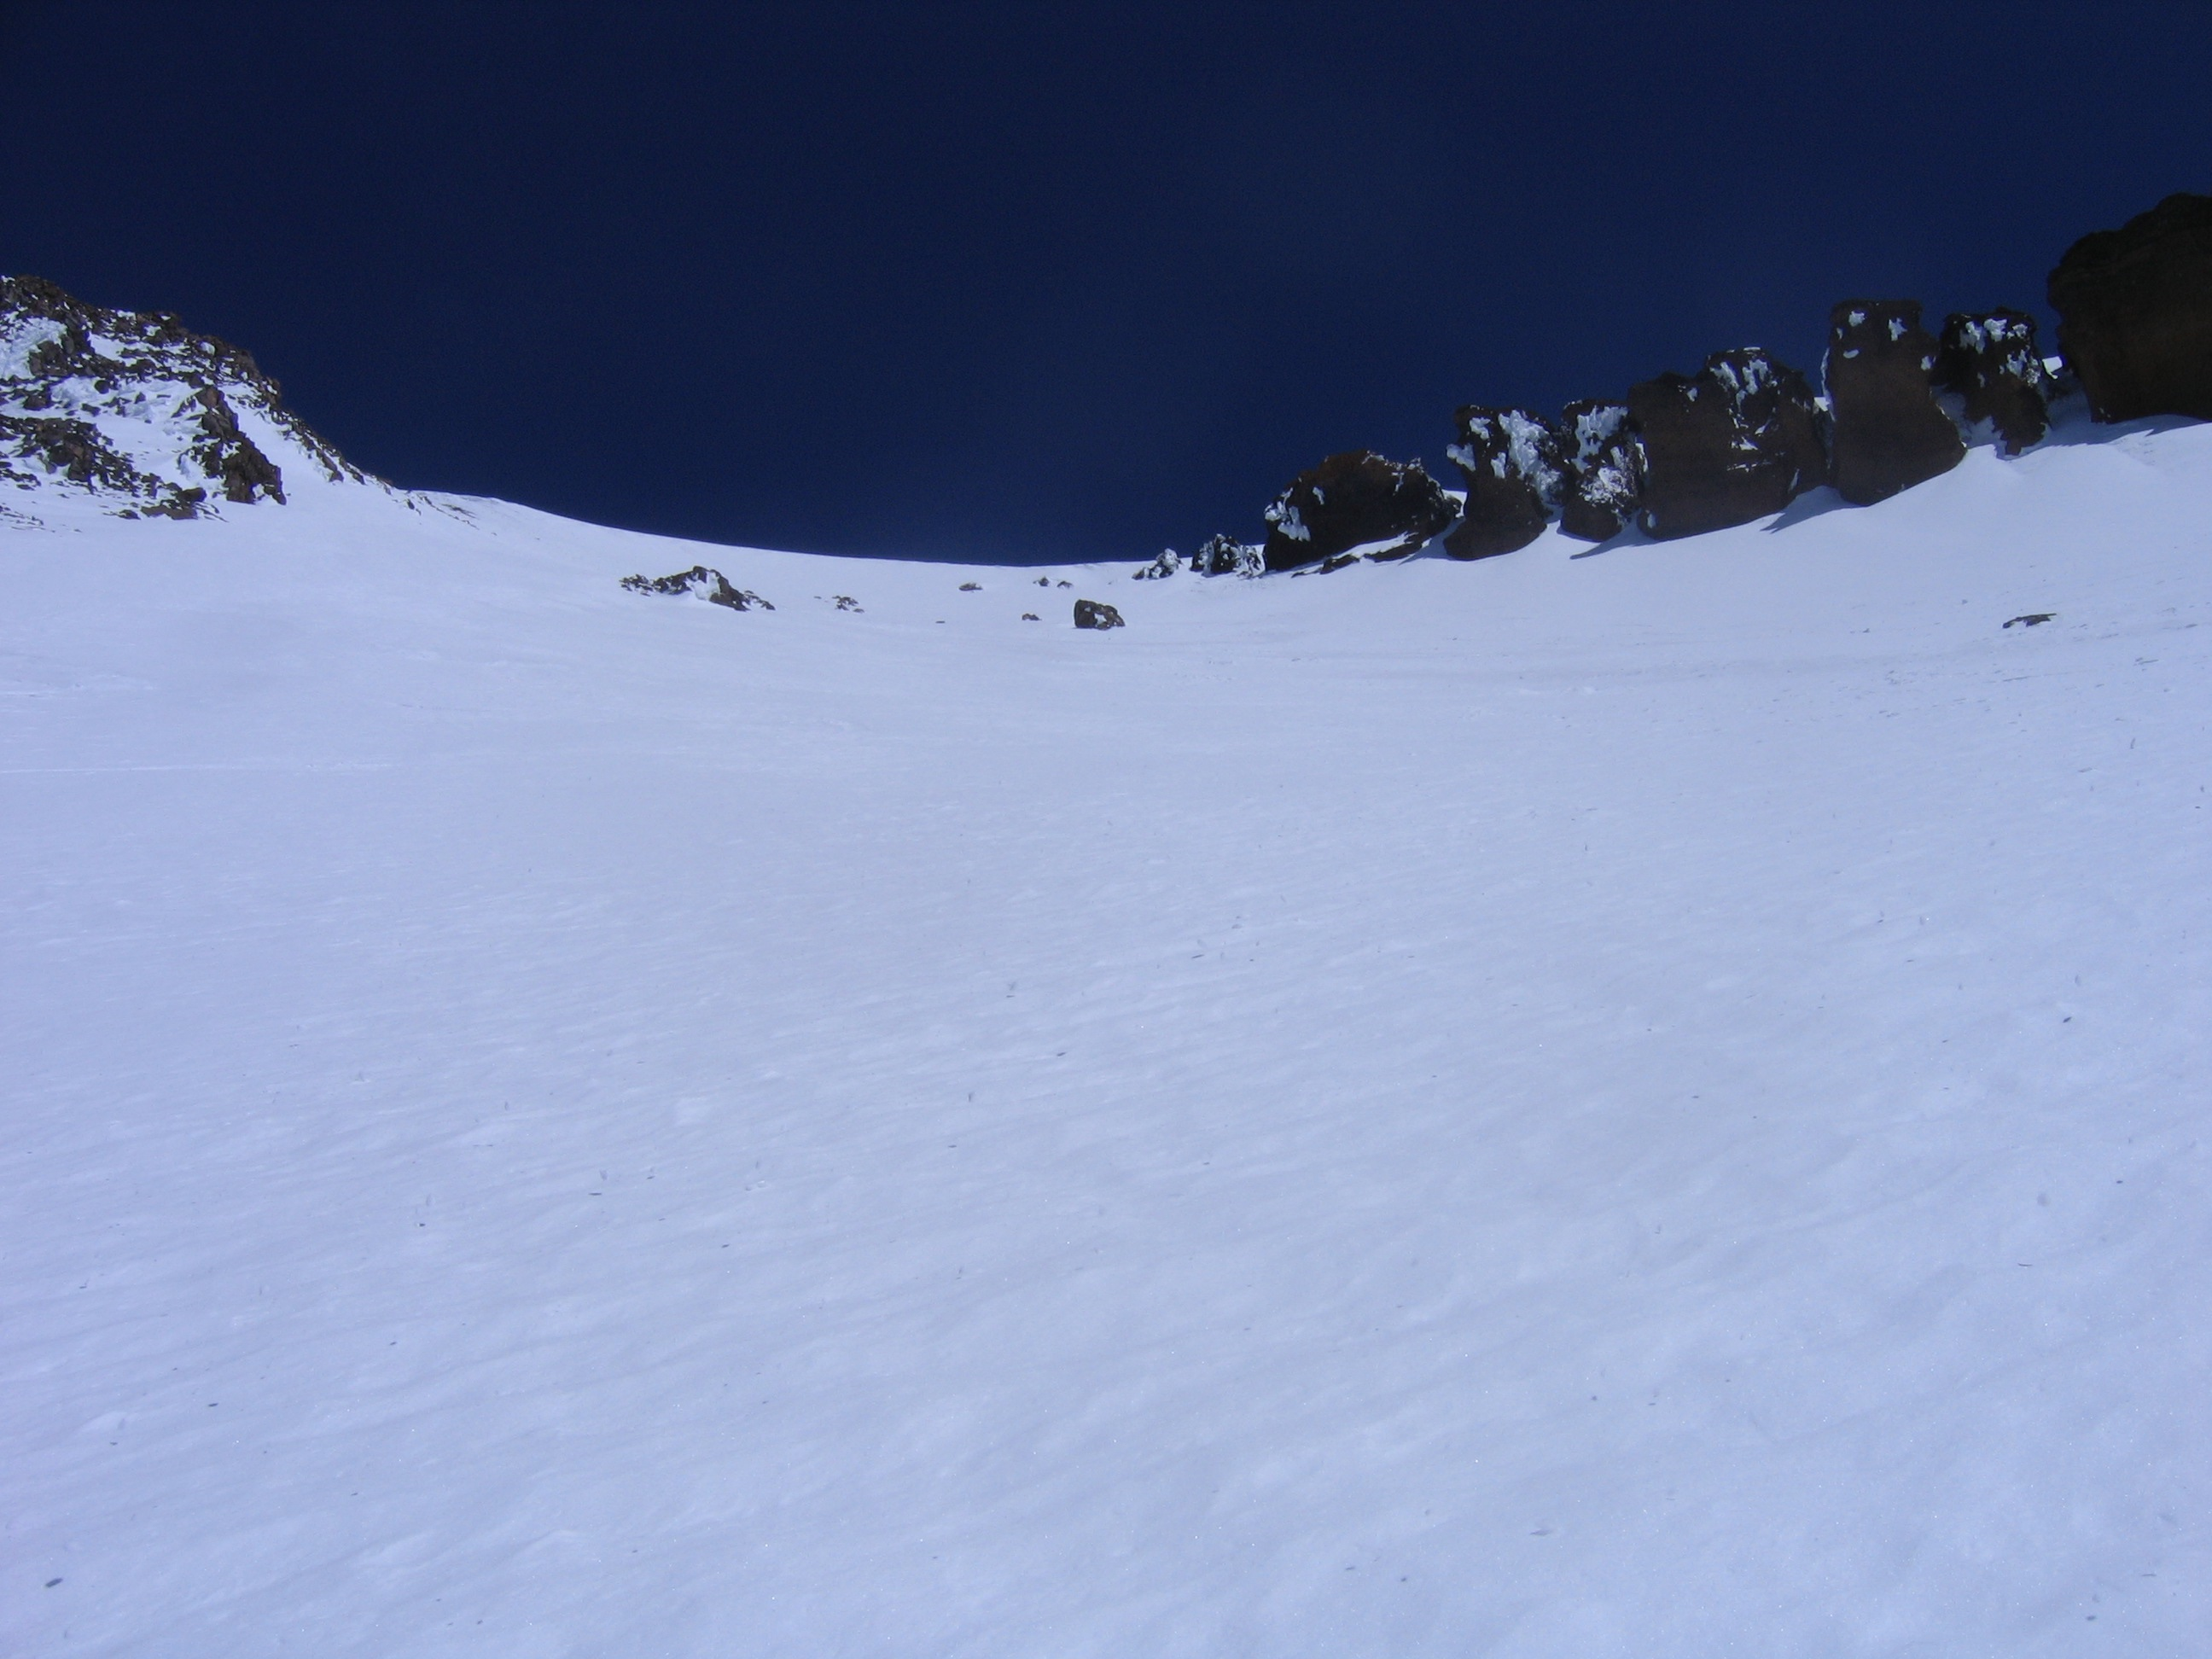 Looking Up the Upper Potion of Avalanche Gulch